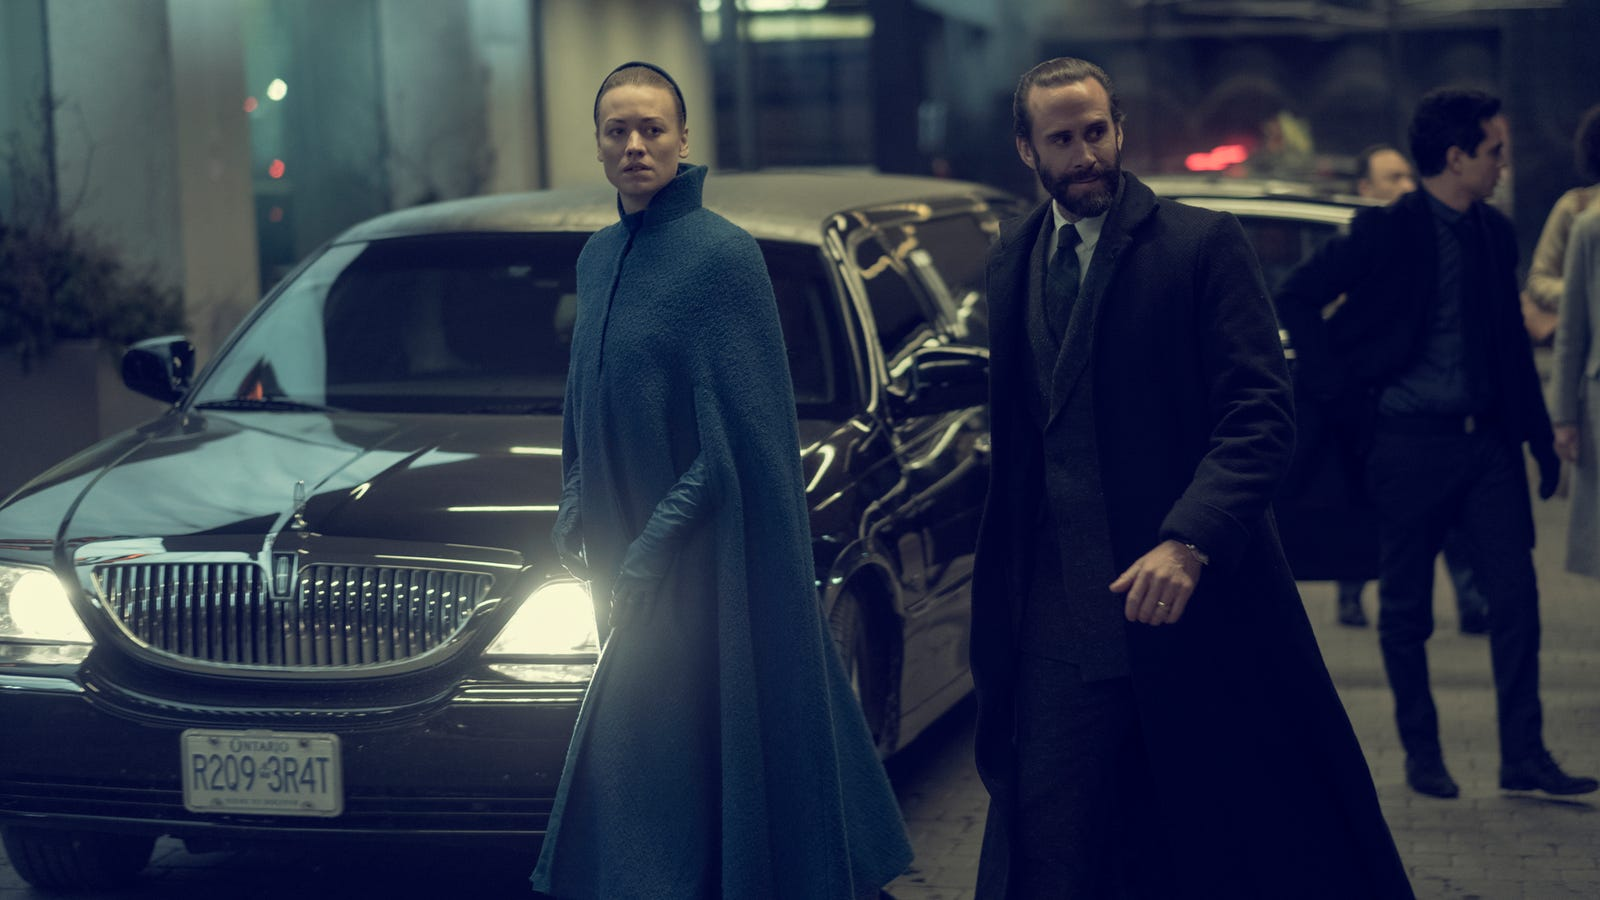 The Villains ofThe Handmaid's Tale Head to Canada for a Fantastically Rewarding Episode